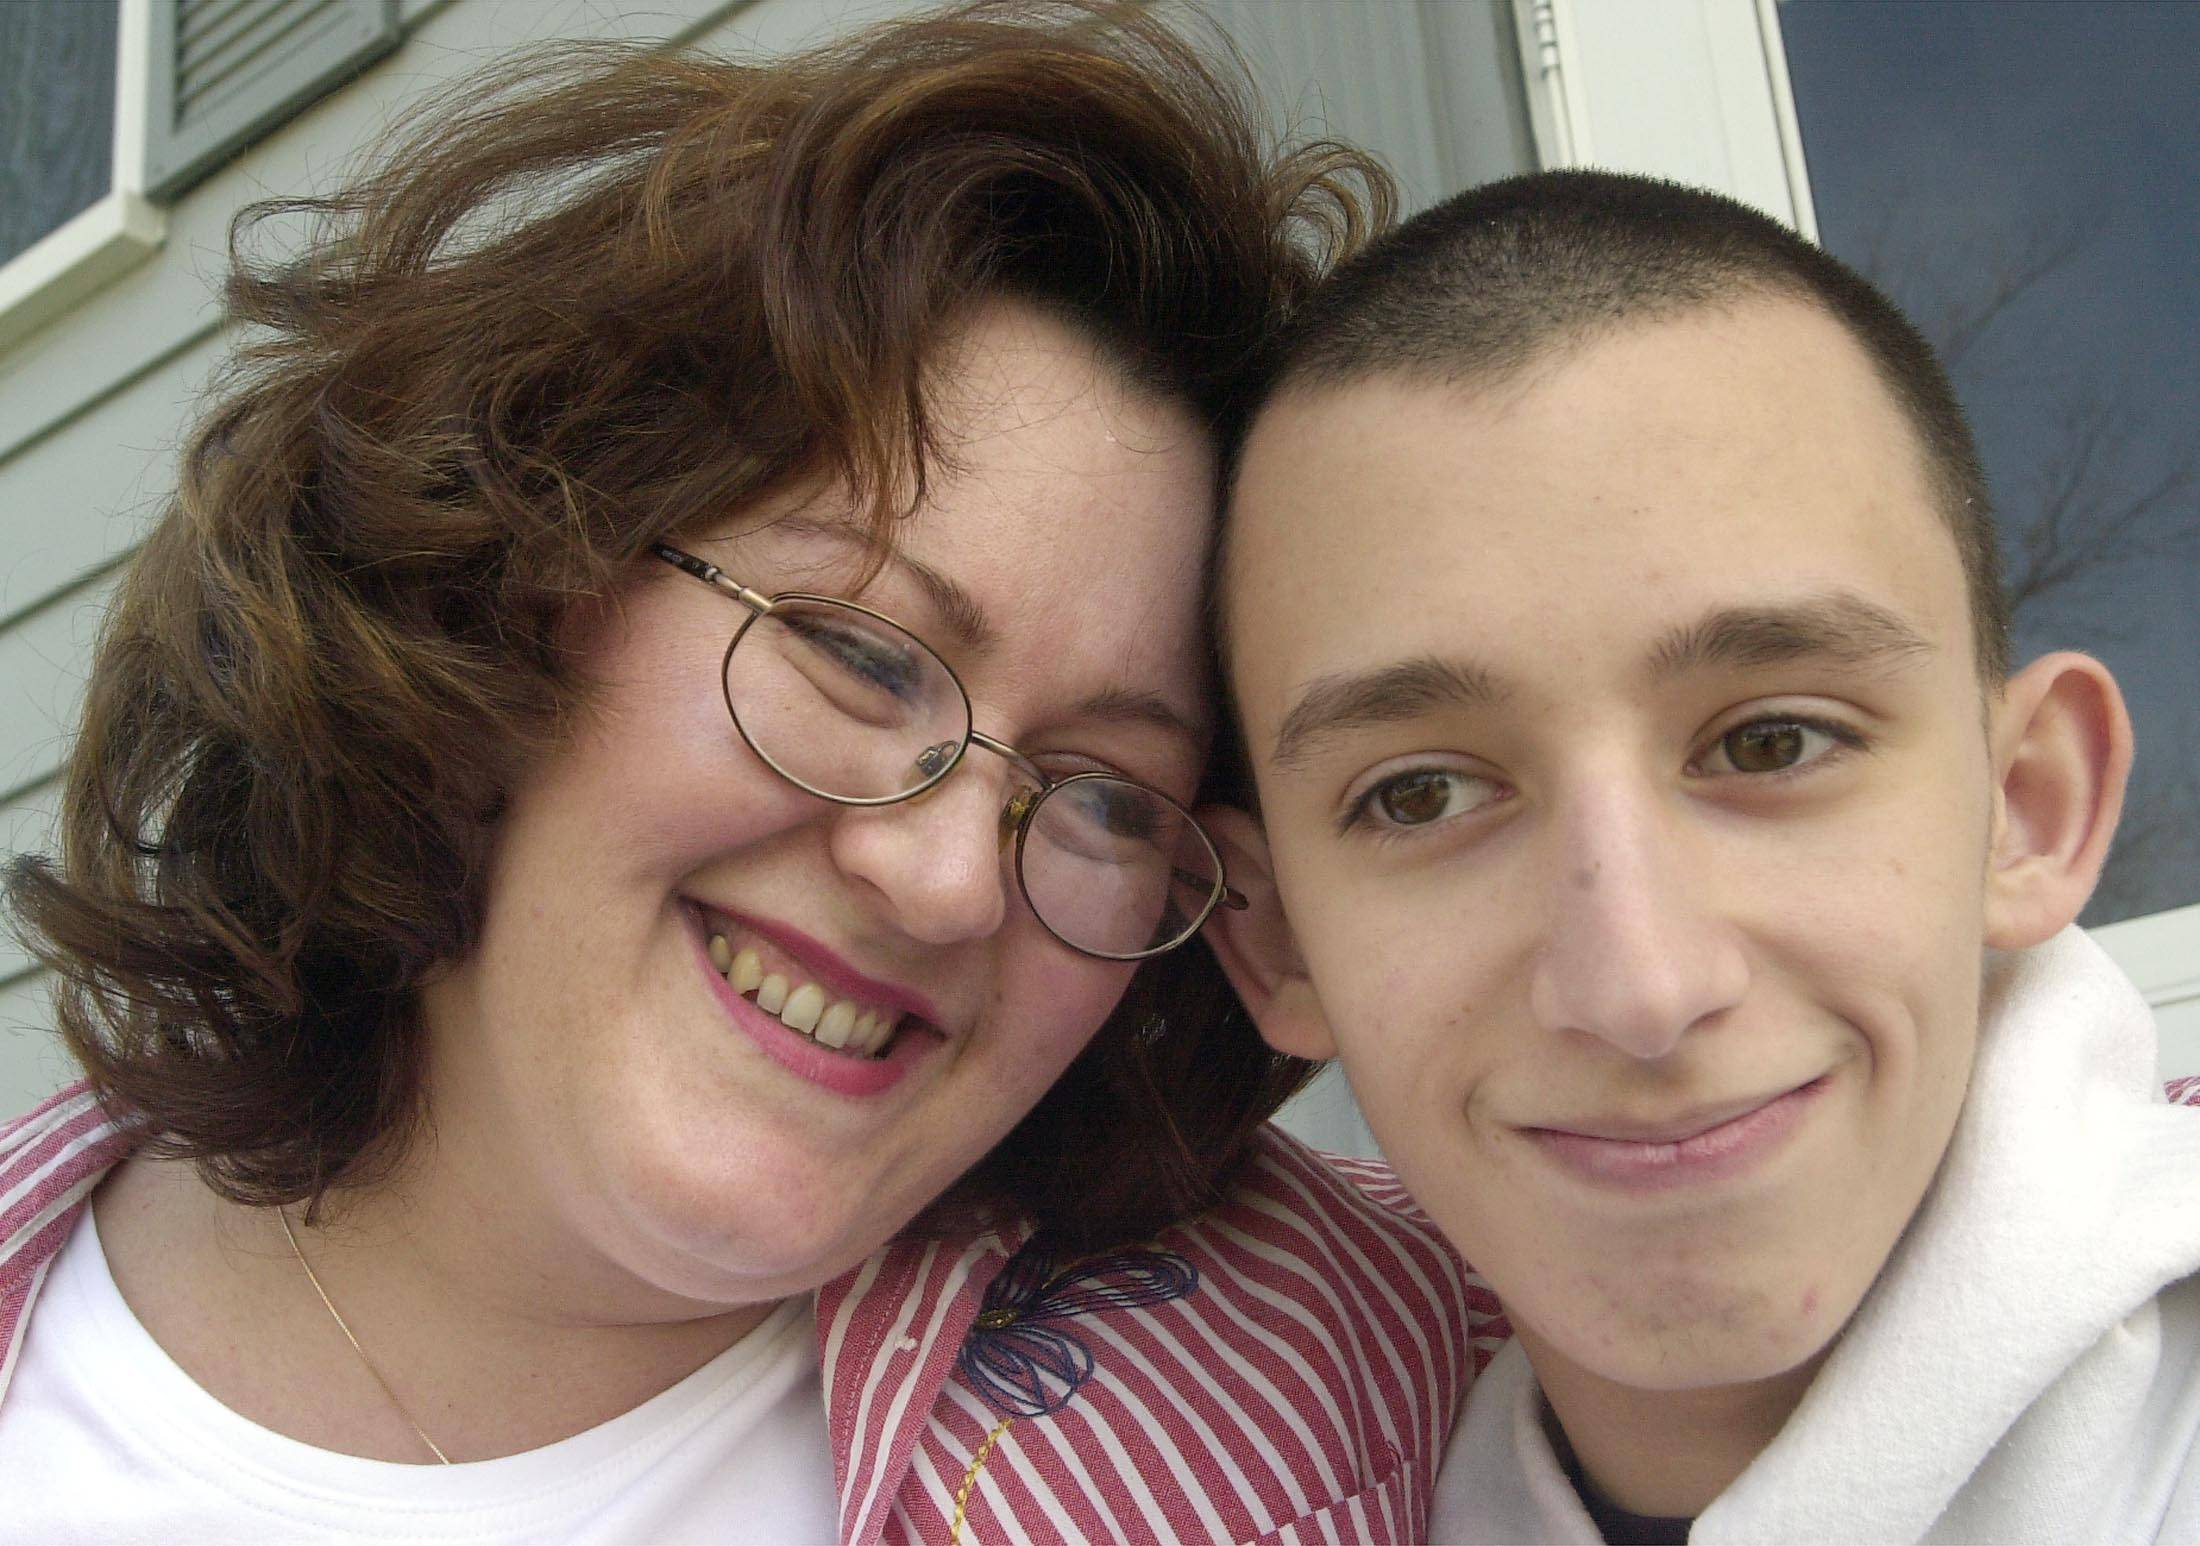 Theresa Blasucci and her son, Nick, of Glendale Heights.